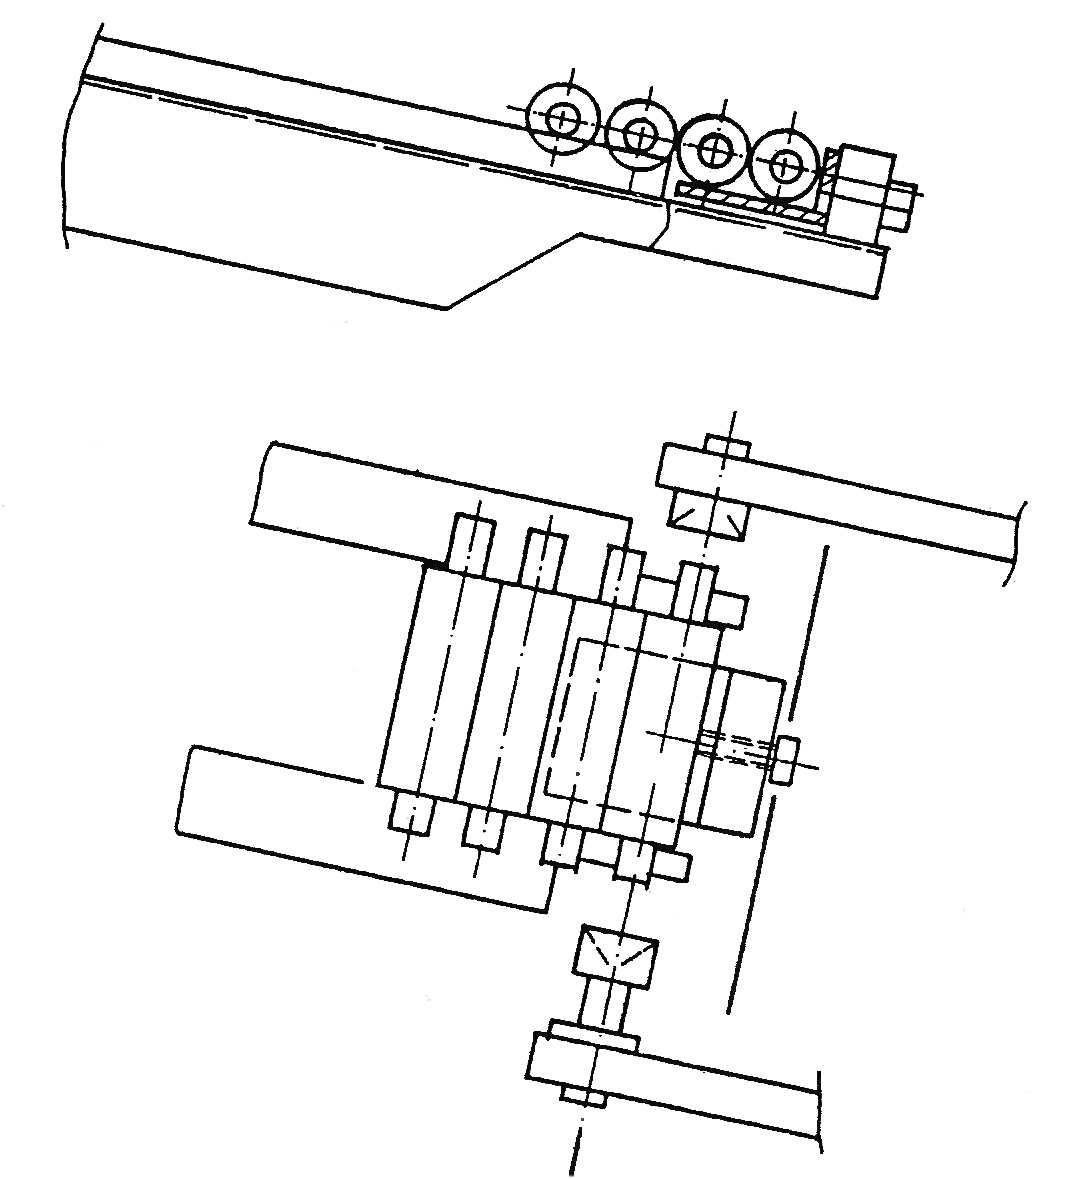 Loading Diagram of Shank-Type Parts